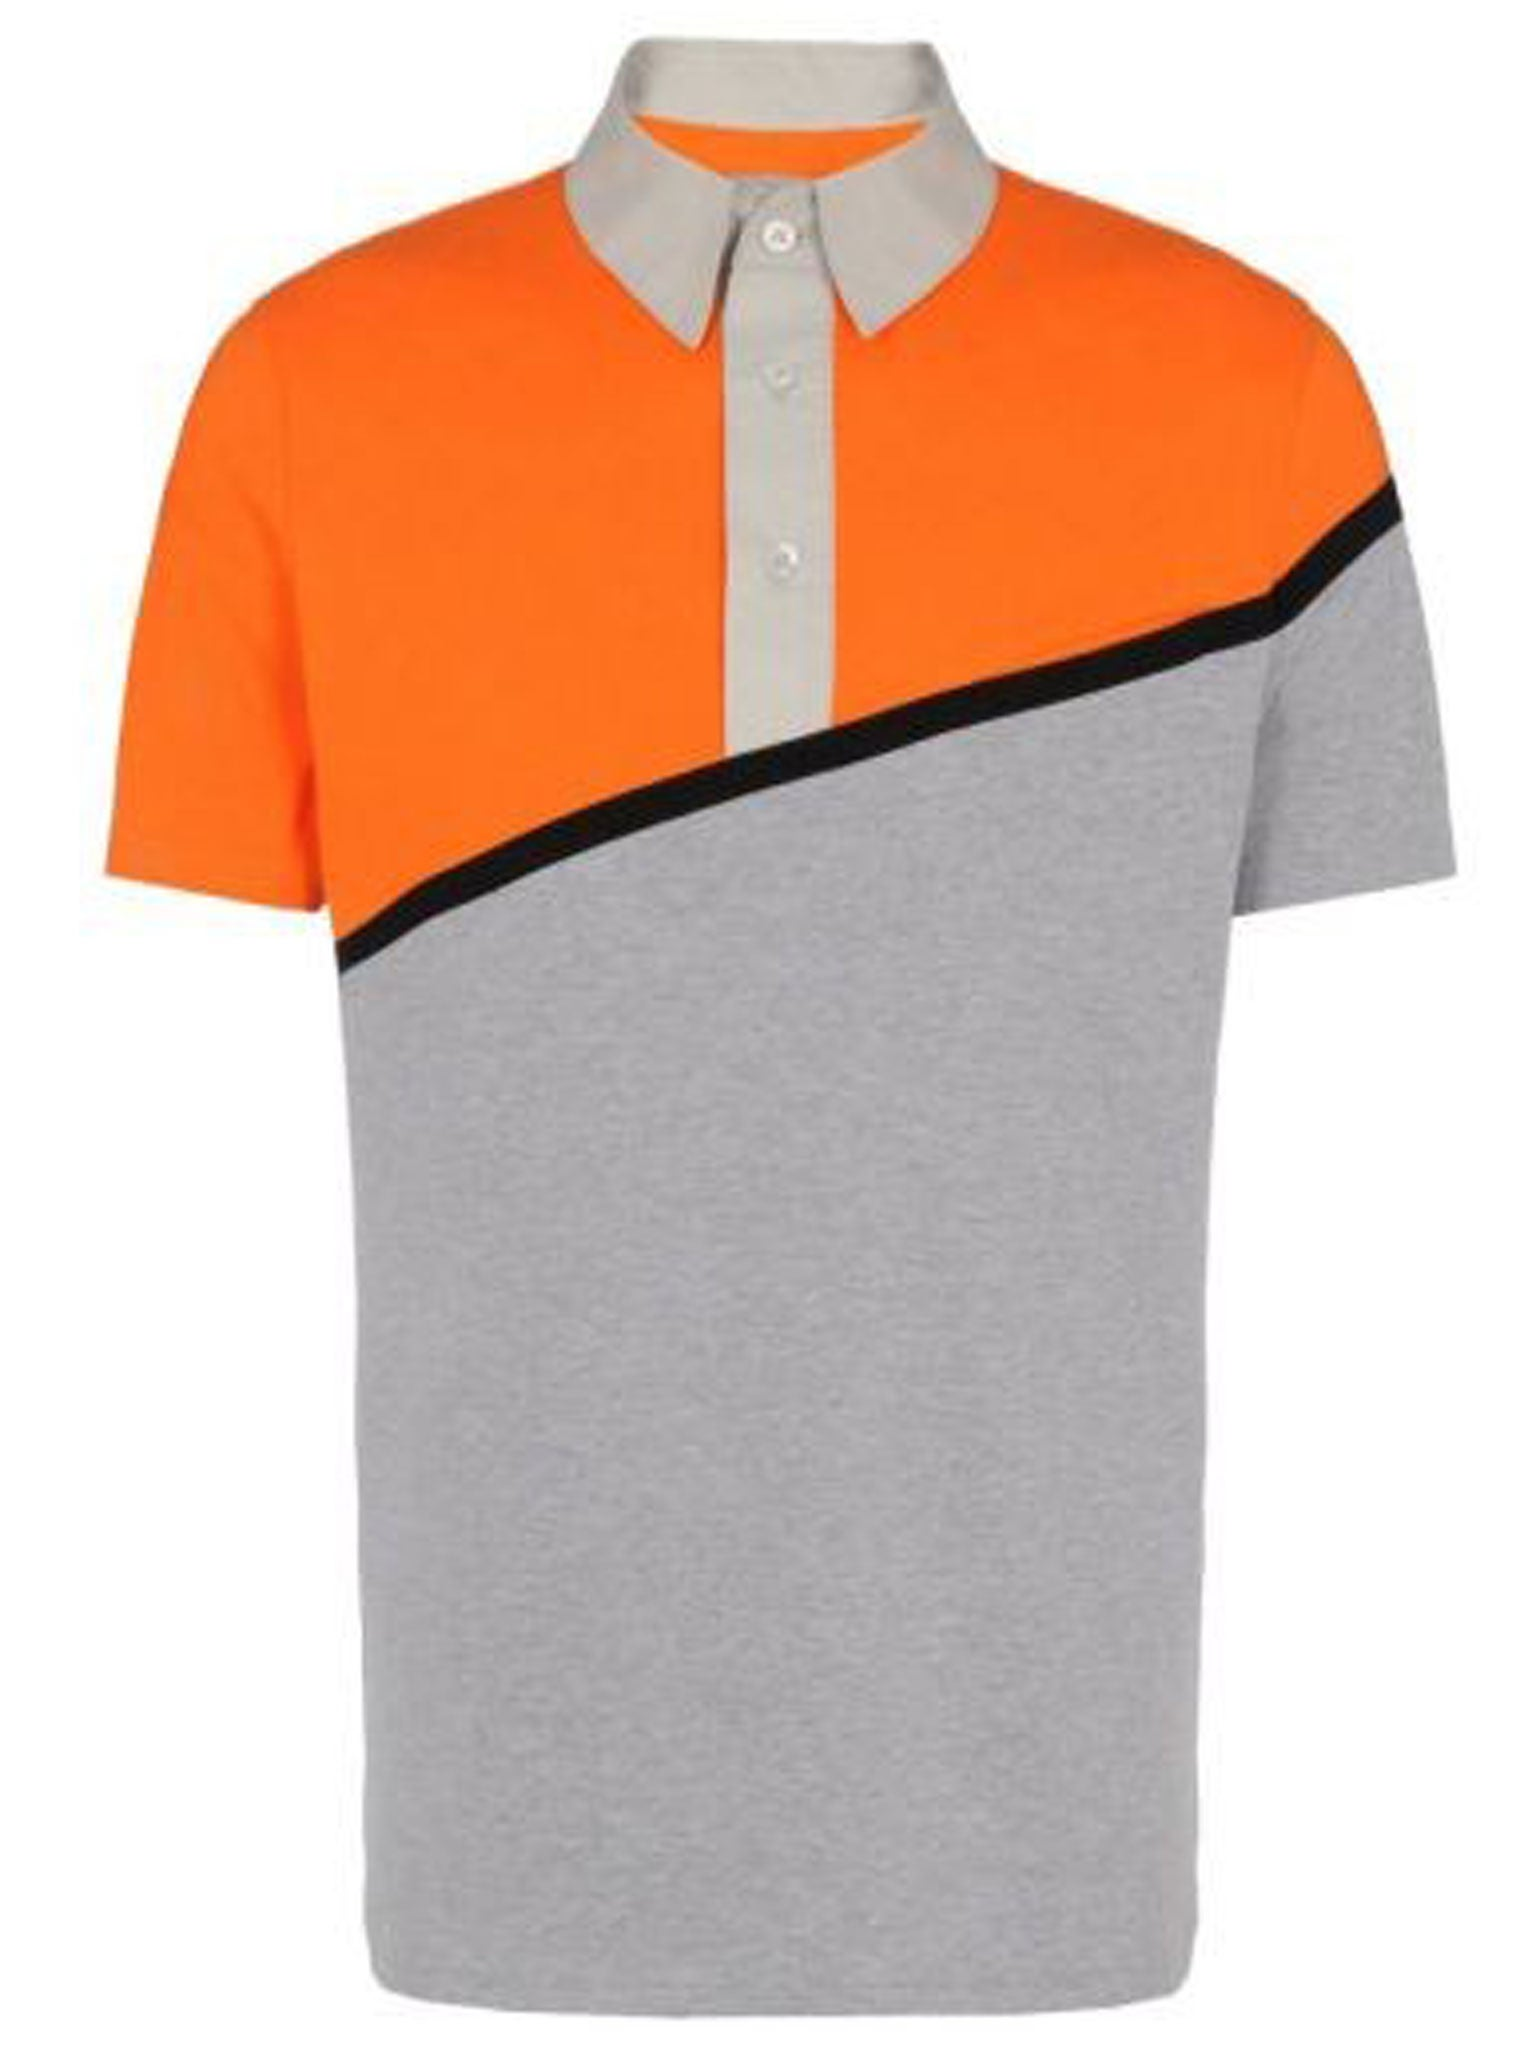 The 10 Best Polo Shirts Lifestyle The Independent